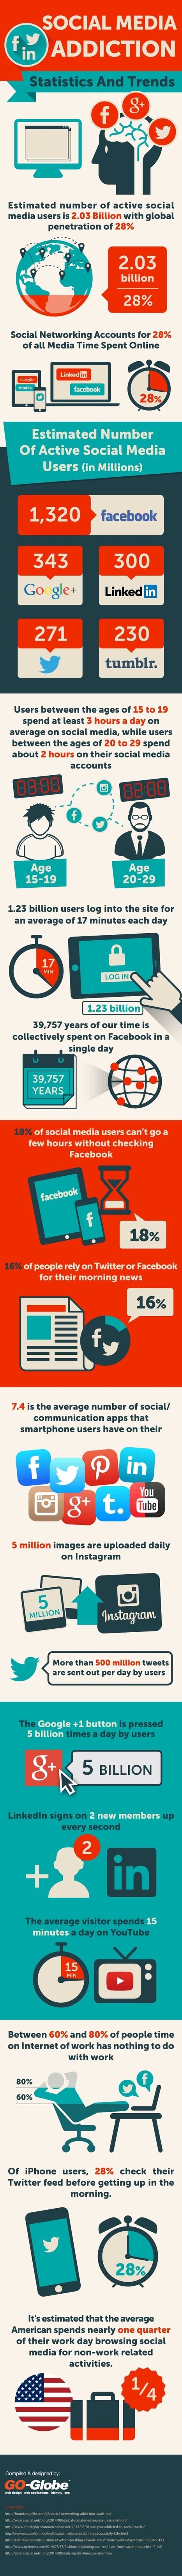 Social Media Addiction: Statistics & Trends [INFOGRAPHIC] - AllTwitter | Social Media News | Scoop.it